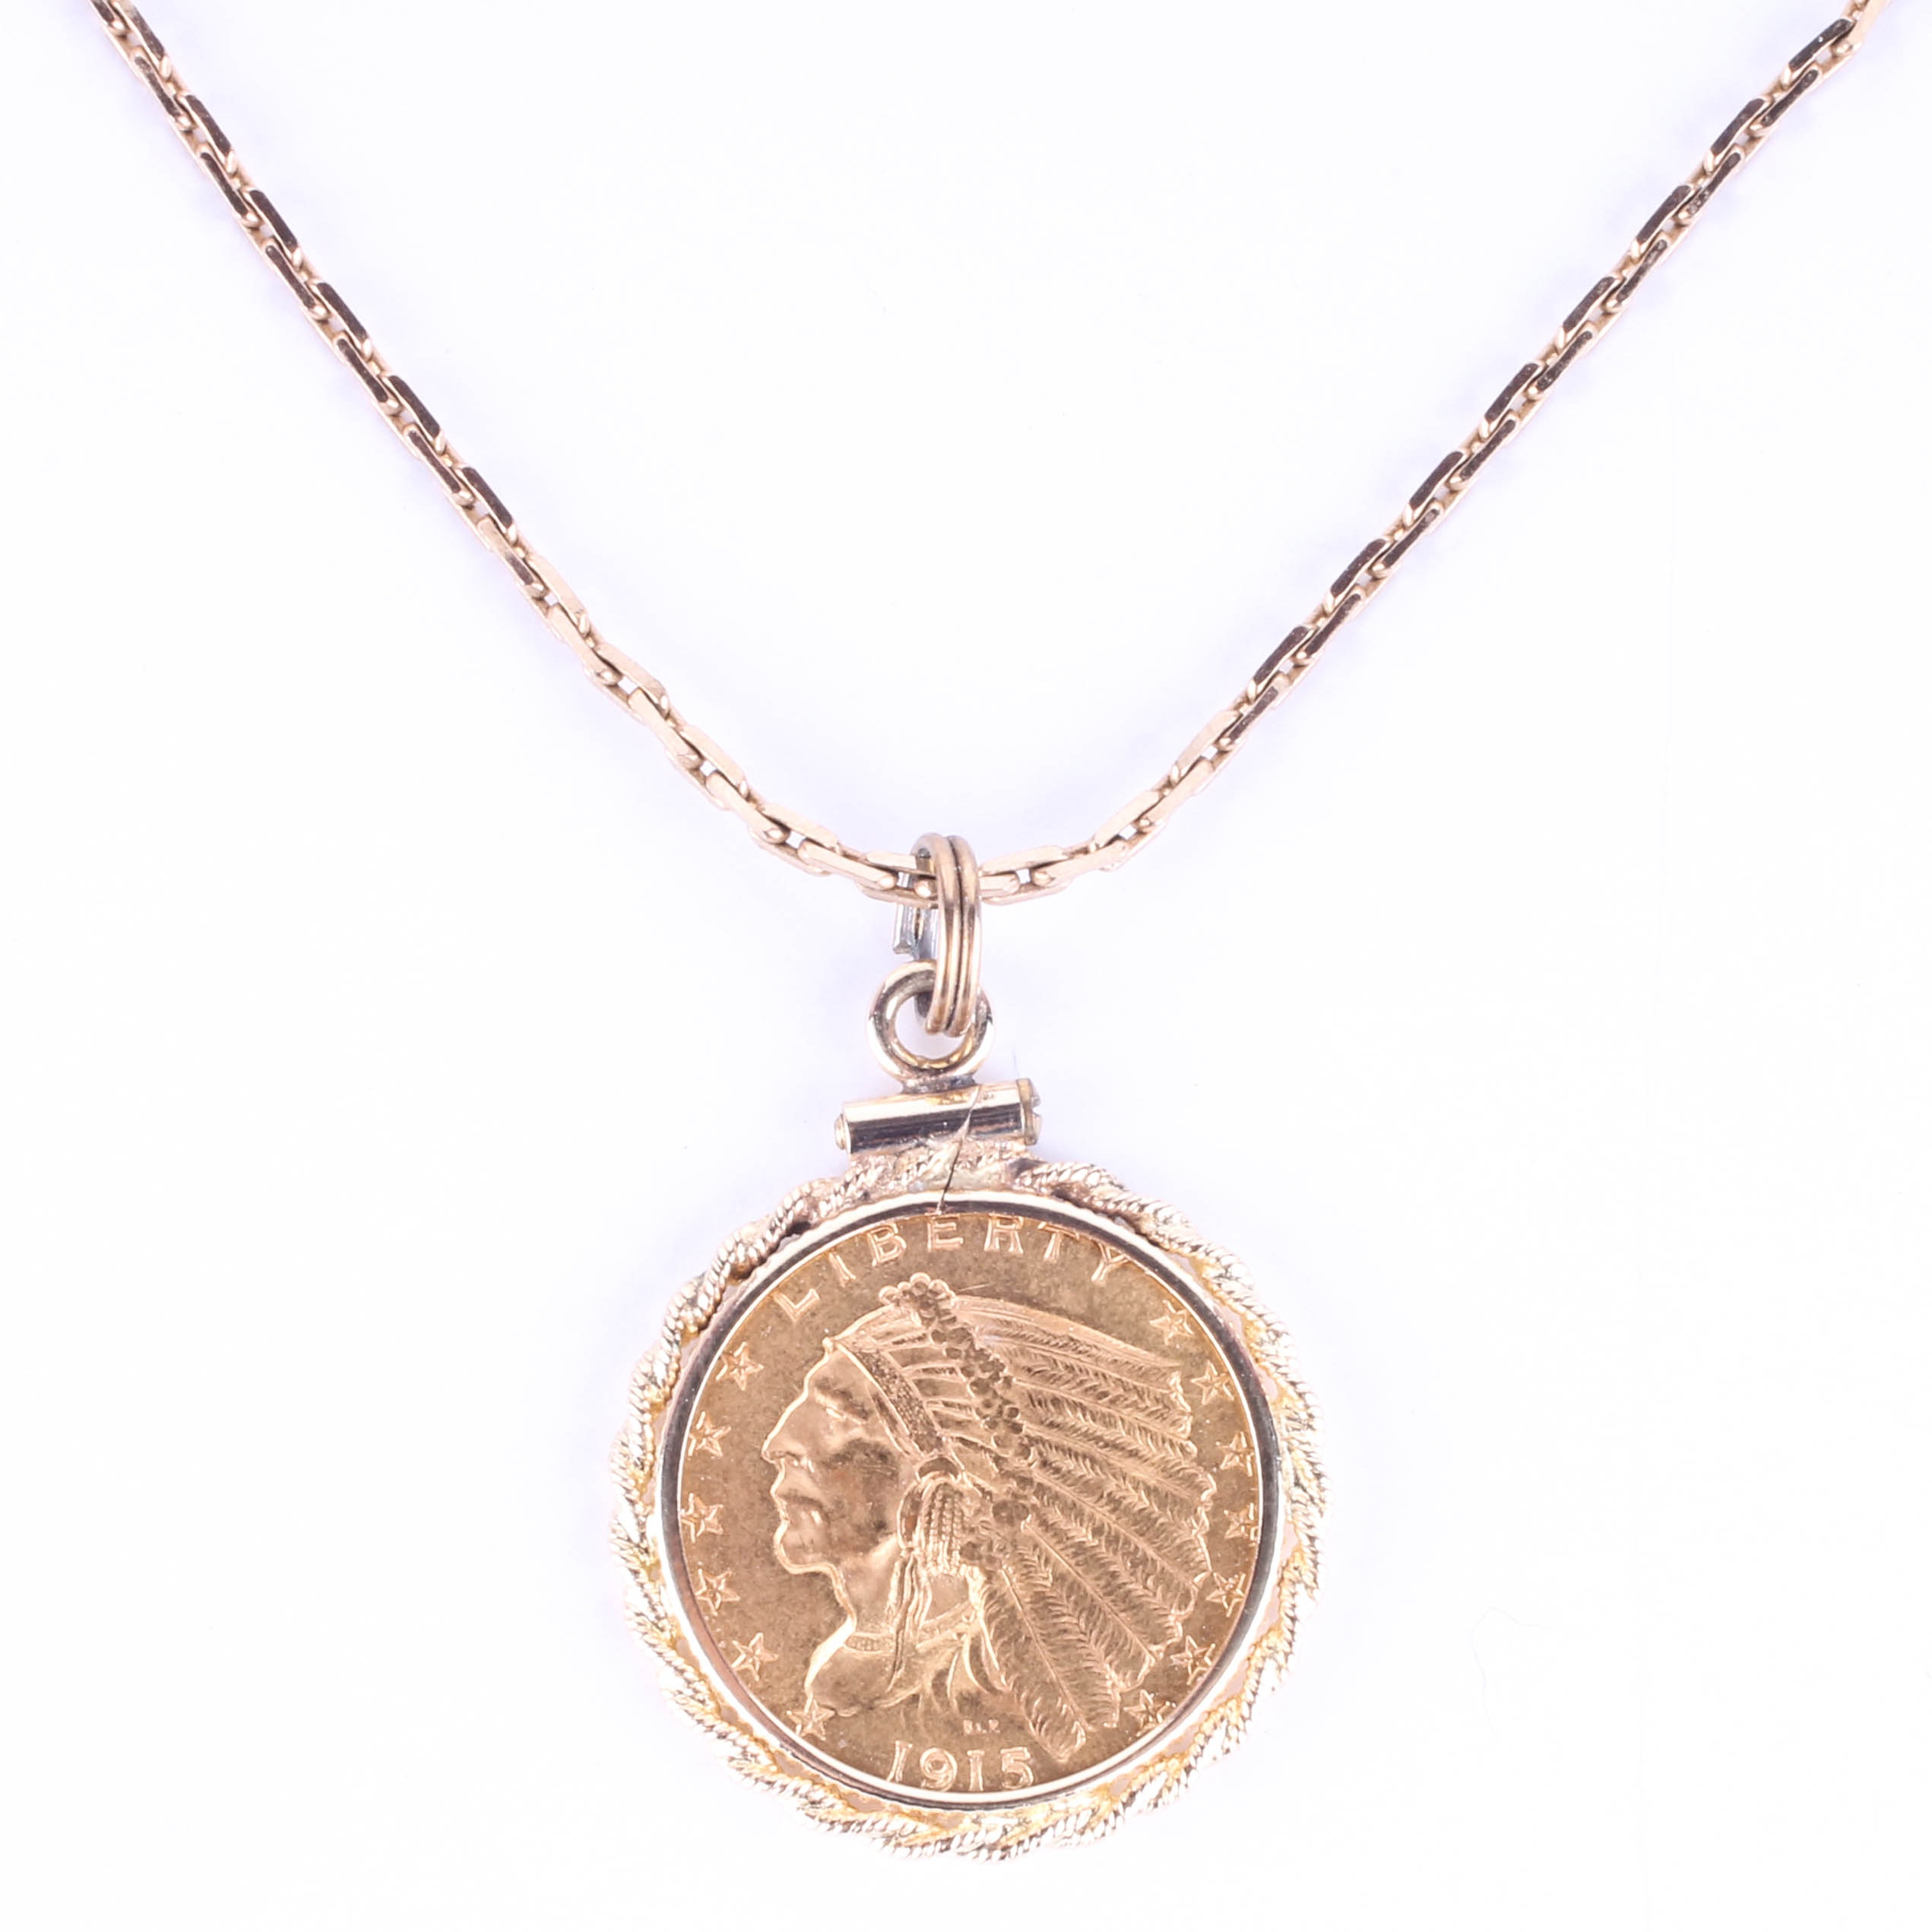 1915 American Gold Coin Pendant and Necklace